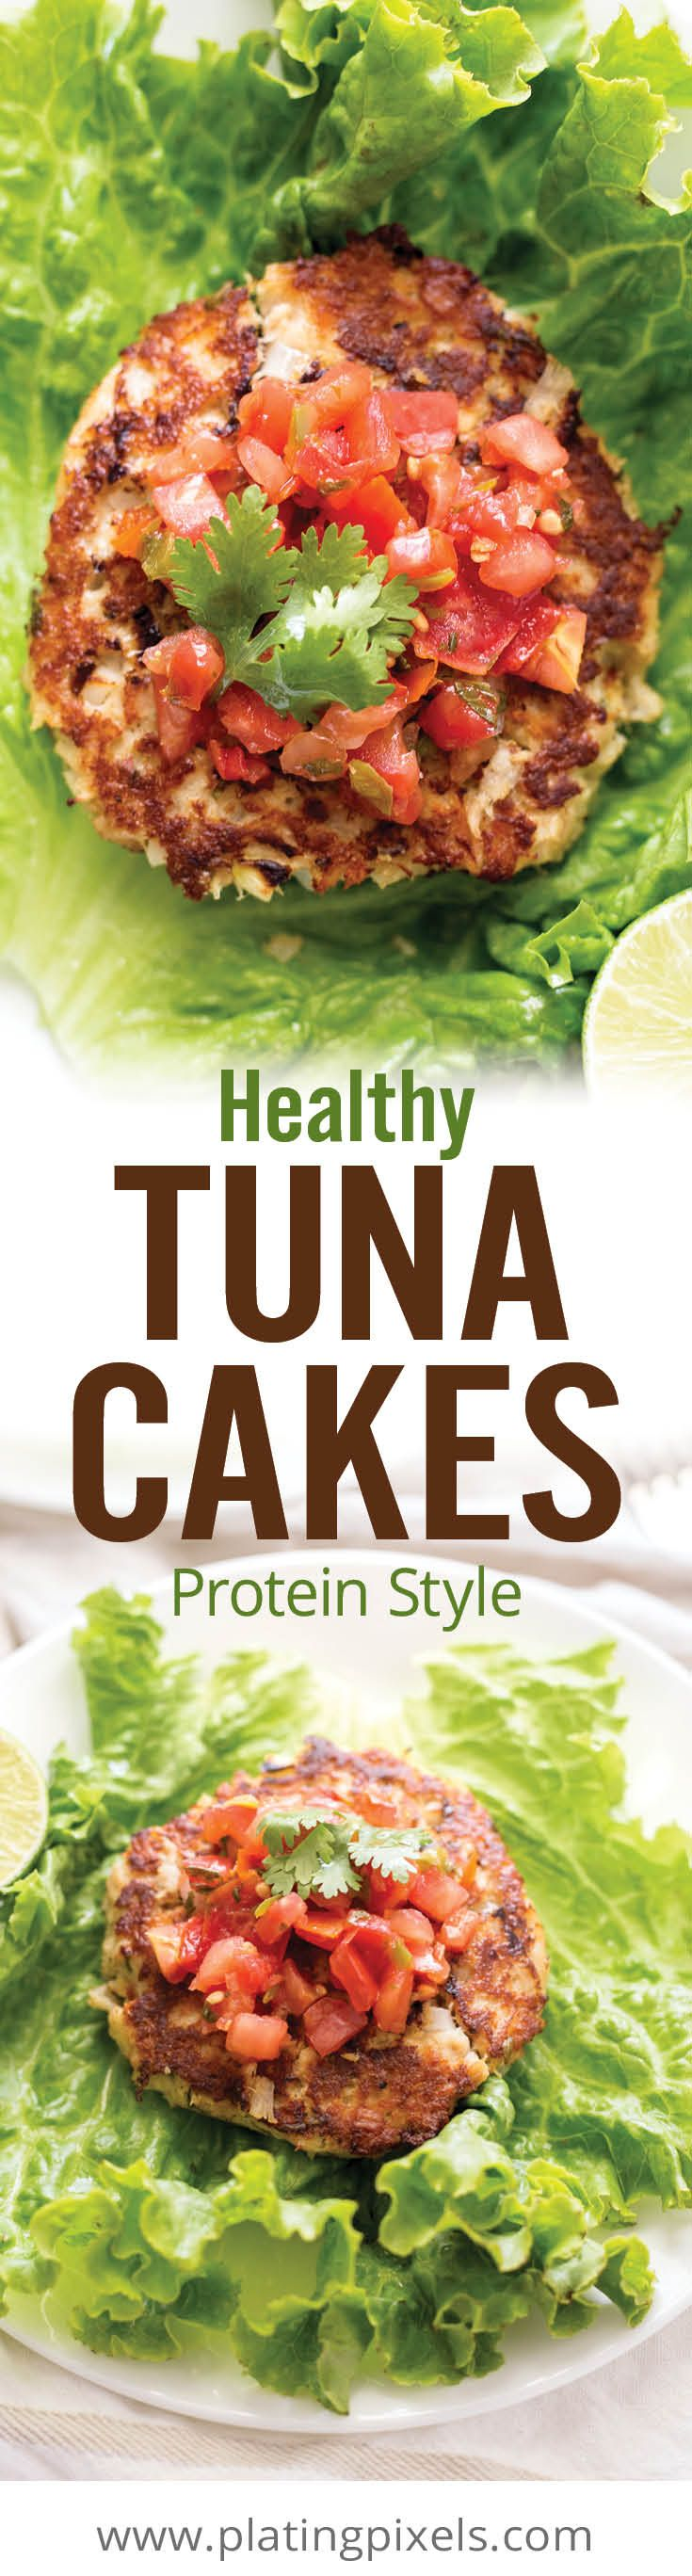 Easy and healthy tuna cakes in under 20 minutes! Albacore canned tuna cake…